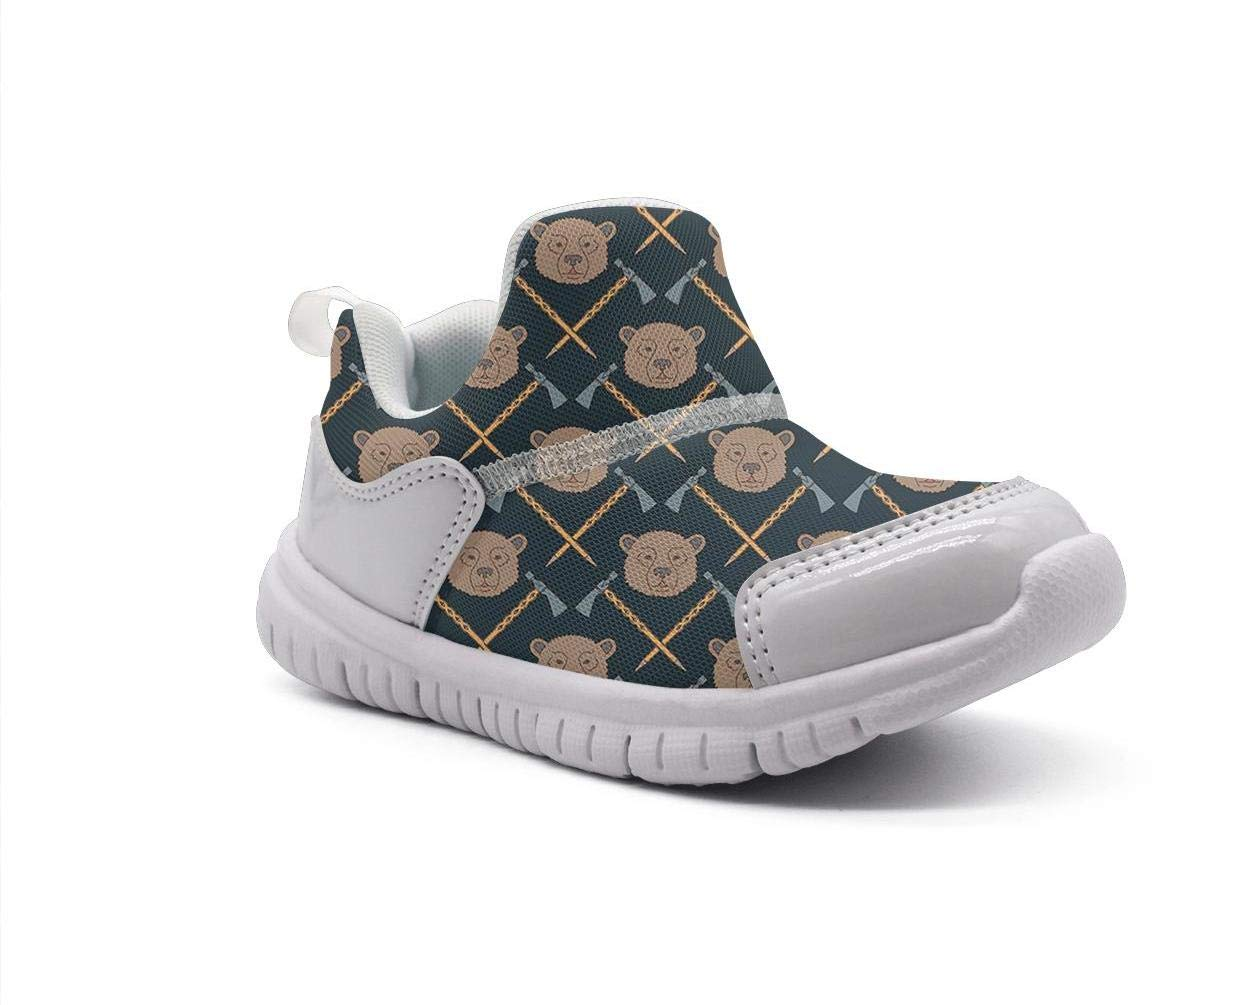 ONEYUAN Children Native American Pattern with Bears Brown Kid Casual Lightweight Sport Shoes Sneakers Running Shoes